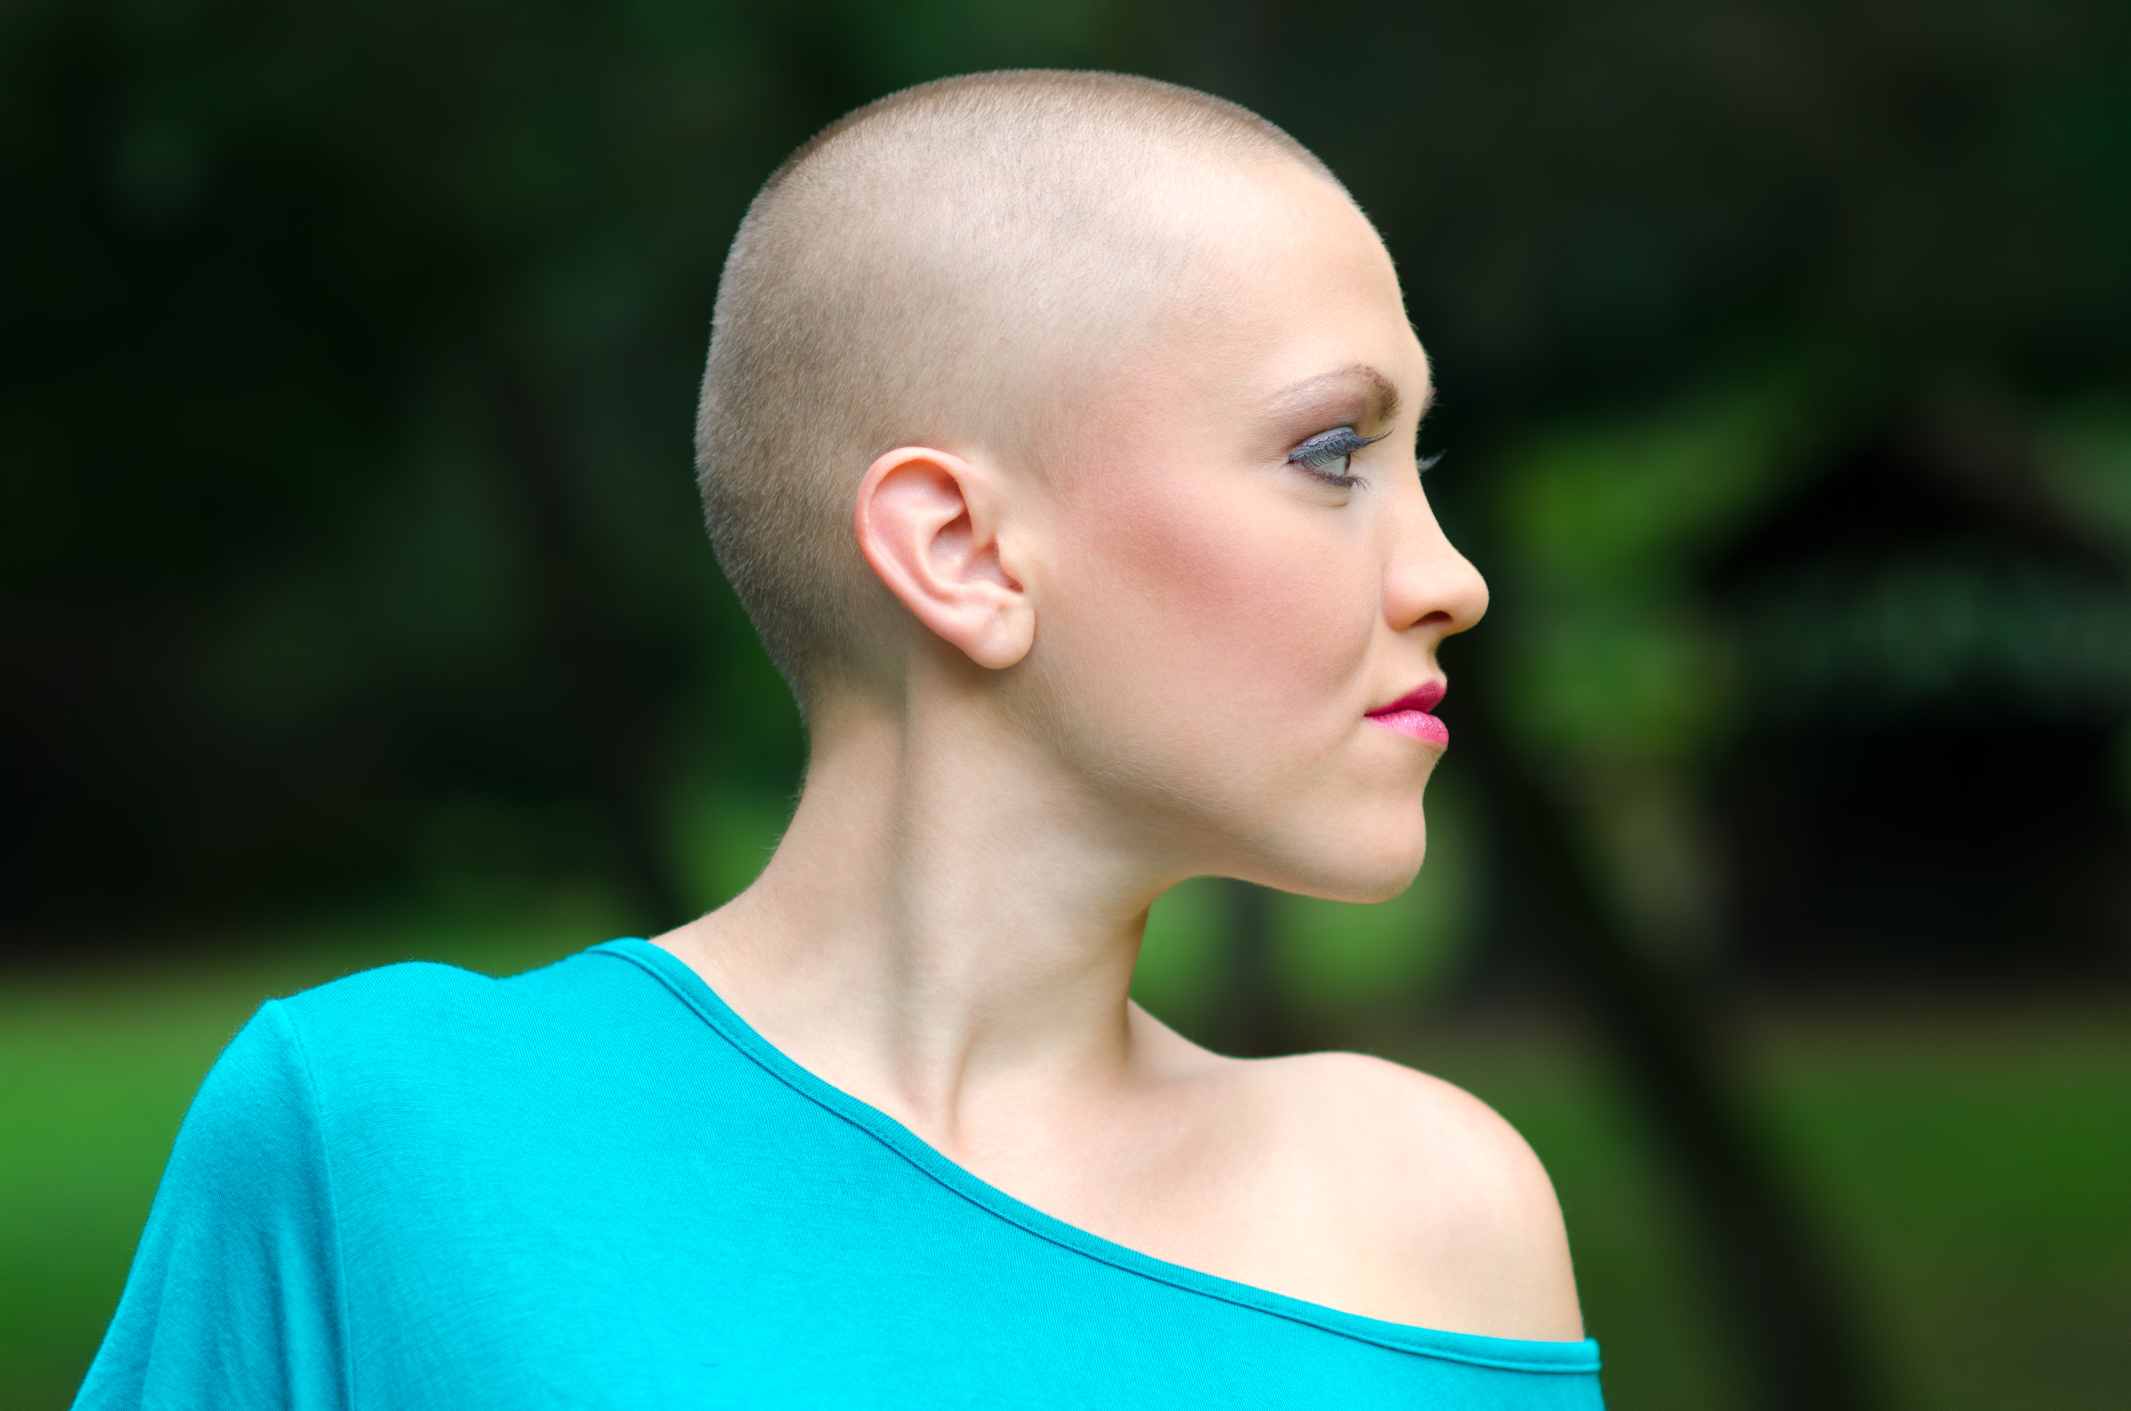 How to Care for the Hair & Scalp During Chemotherapy